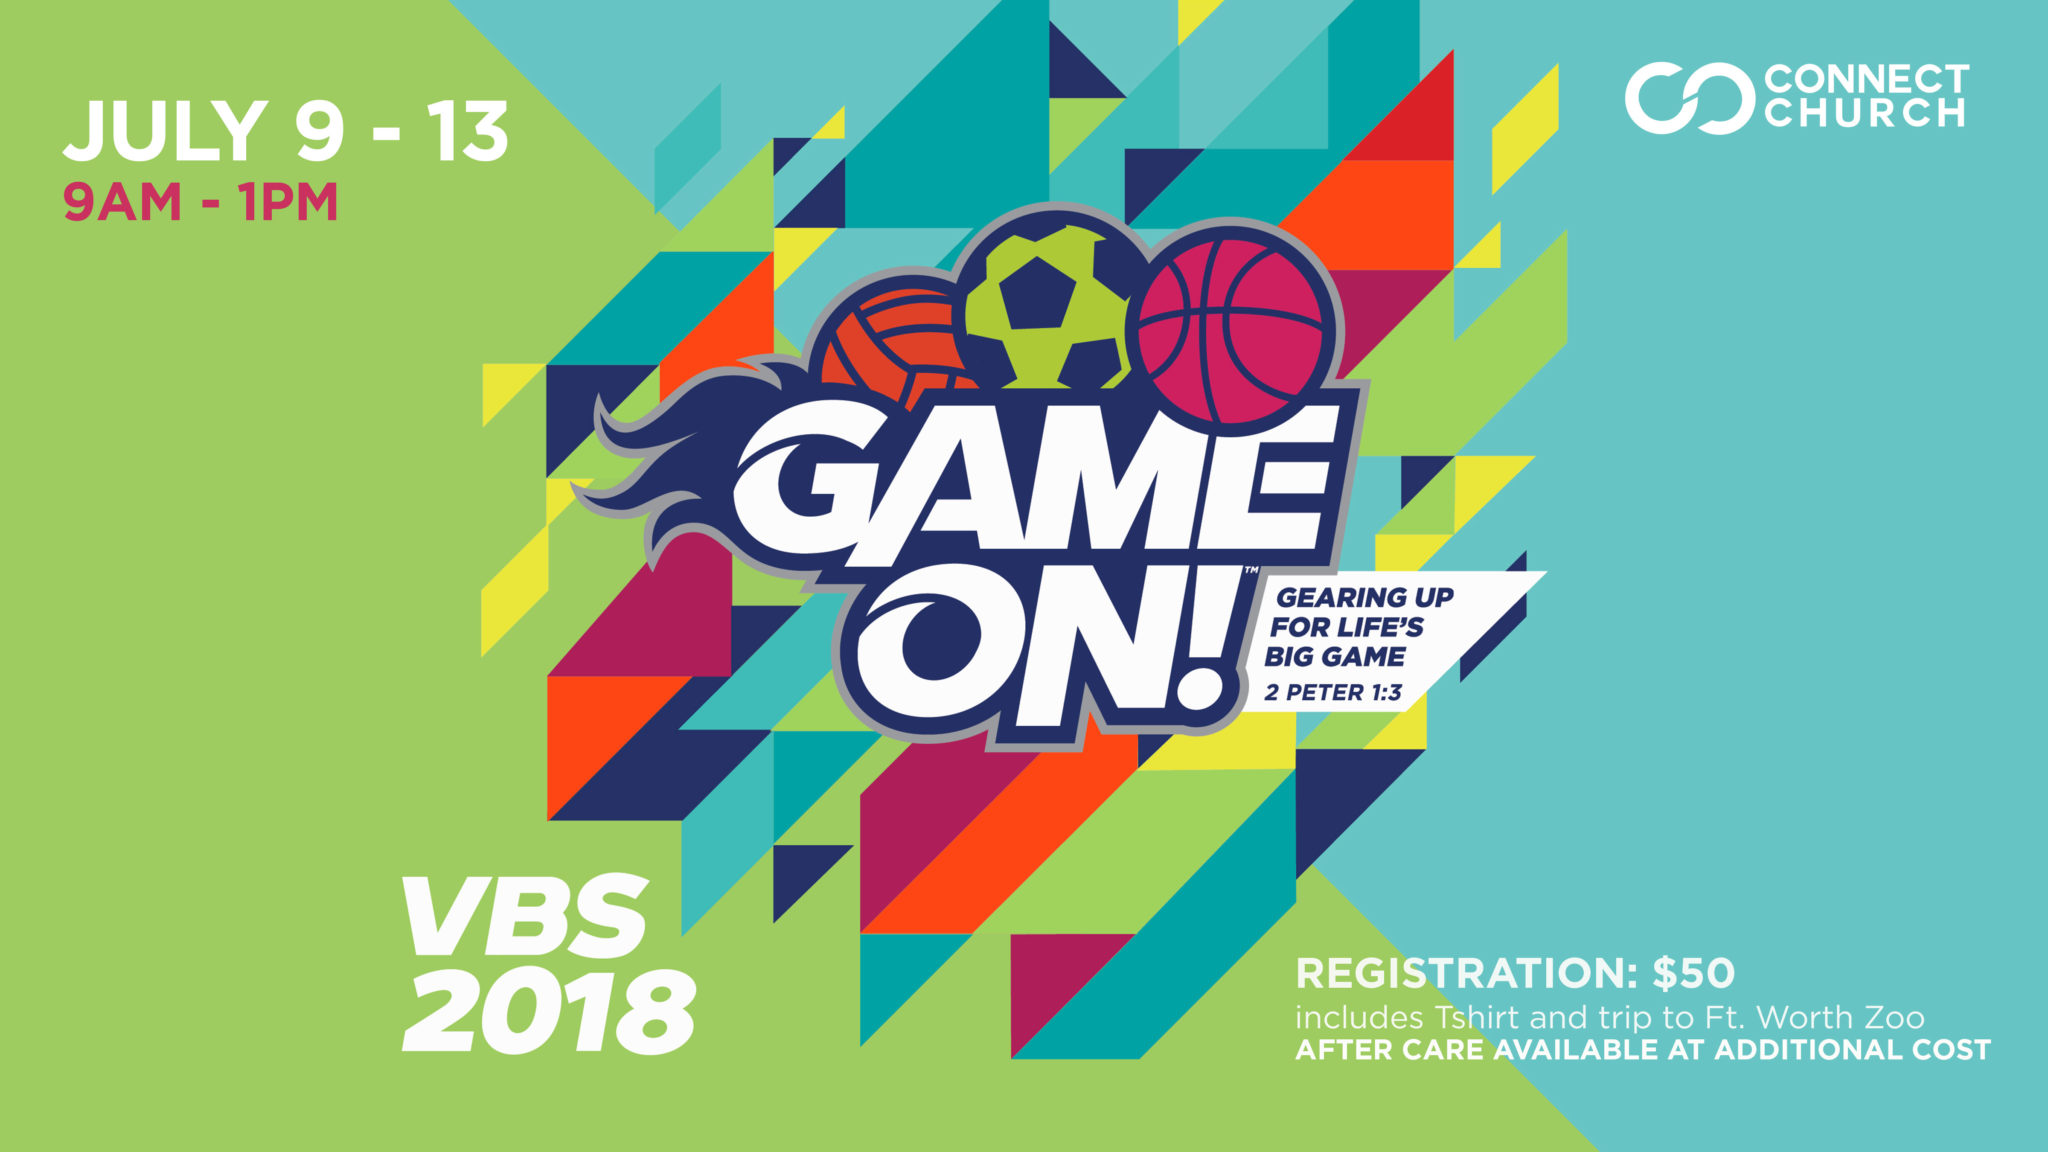 Connect Church VBS 2018